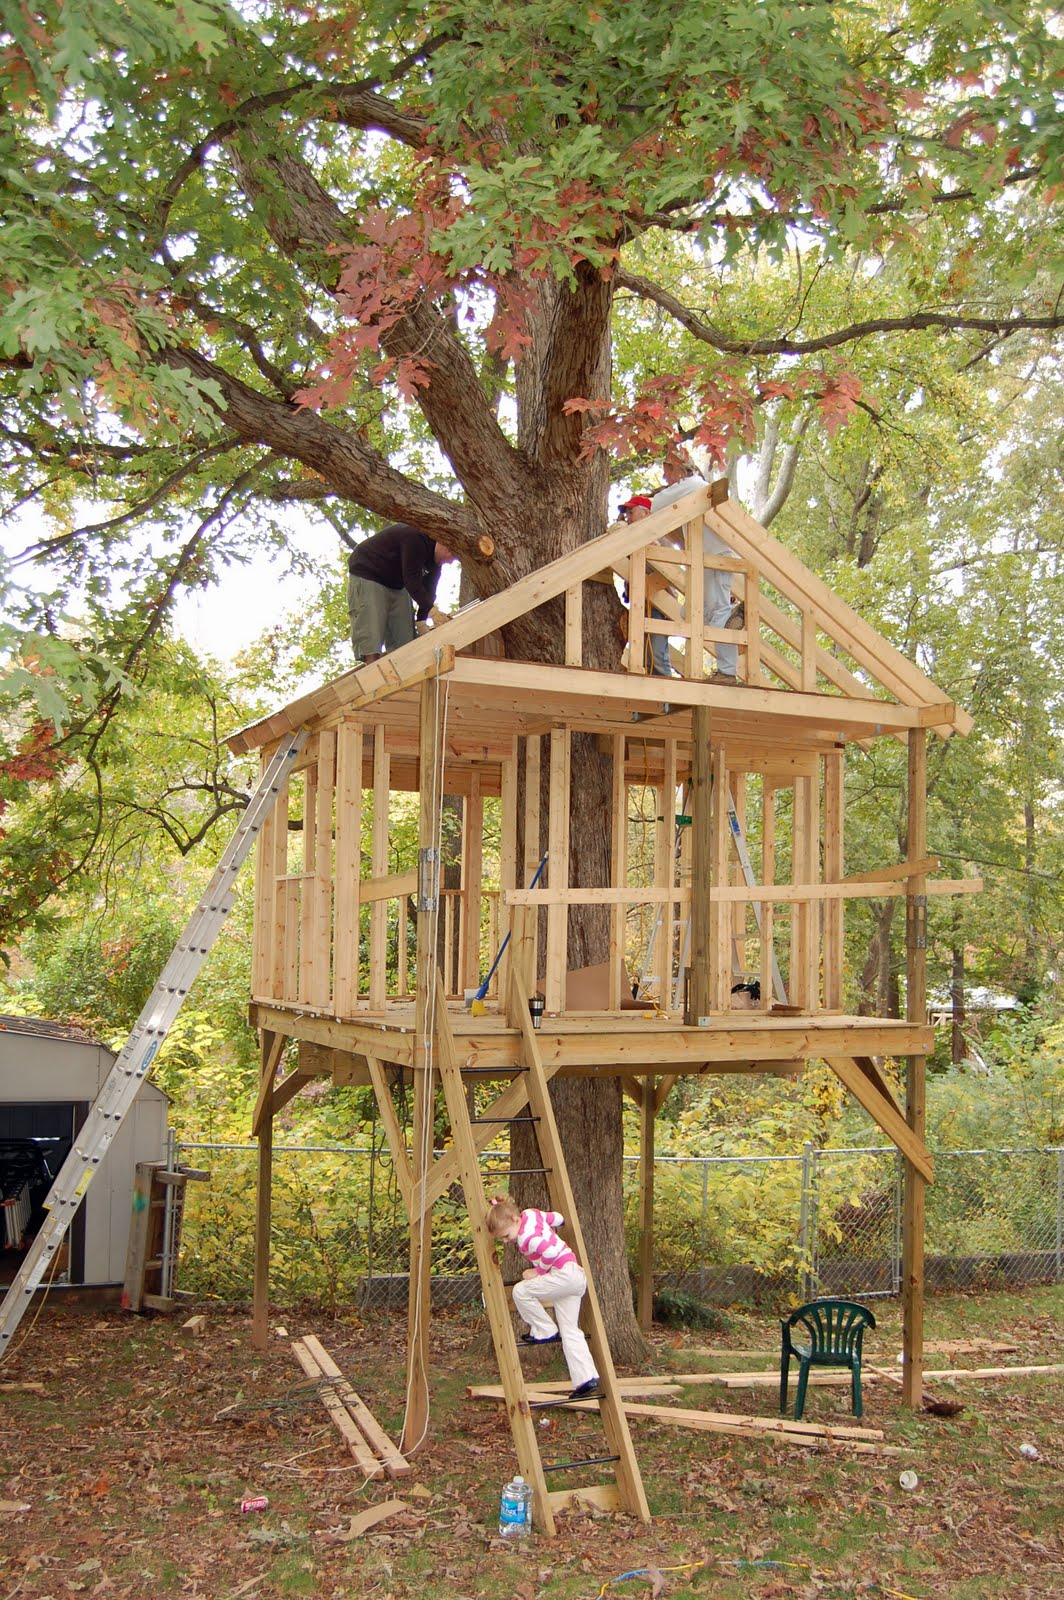 pictures of tree houses and play houses from around the. Black Bedroom Furniture Sets. Home Design Ideas